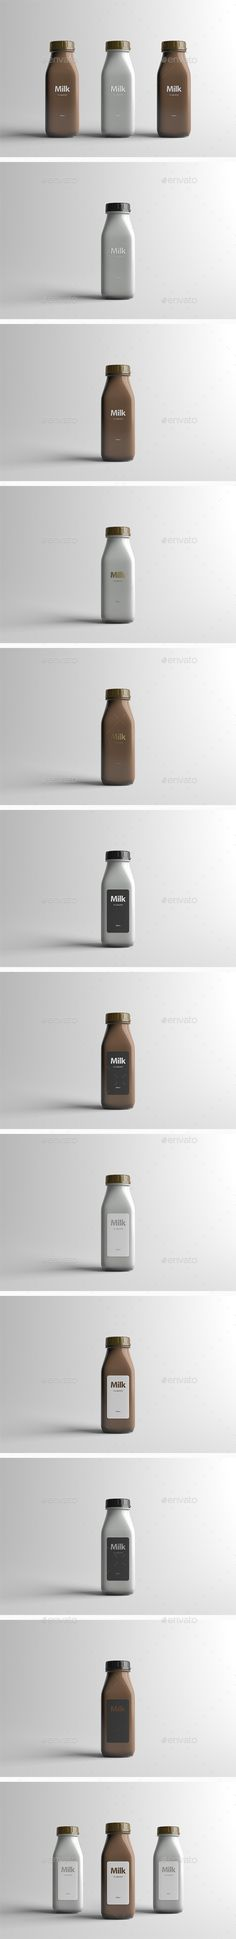 Milk Bottle Packaging MockUp — Photoshop PSD #matte #realistic • Available here → https://graphicriver.net/item/milk-bottle-packaging-mockup/16079323?ref=pxcr